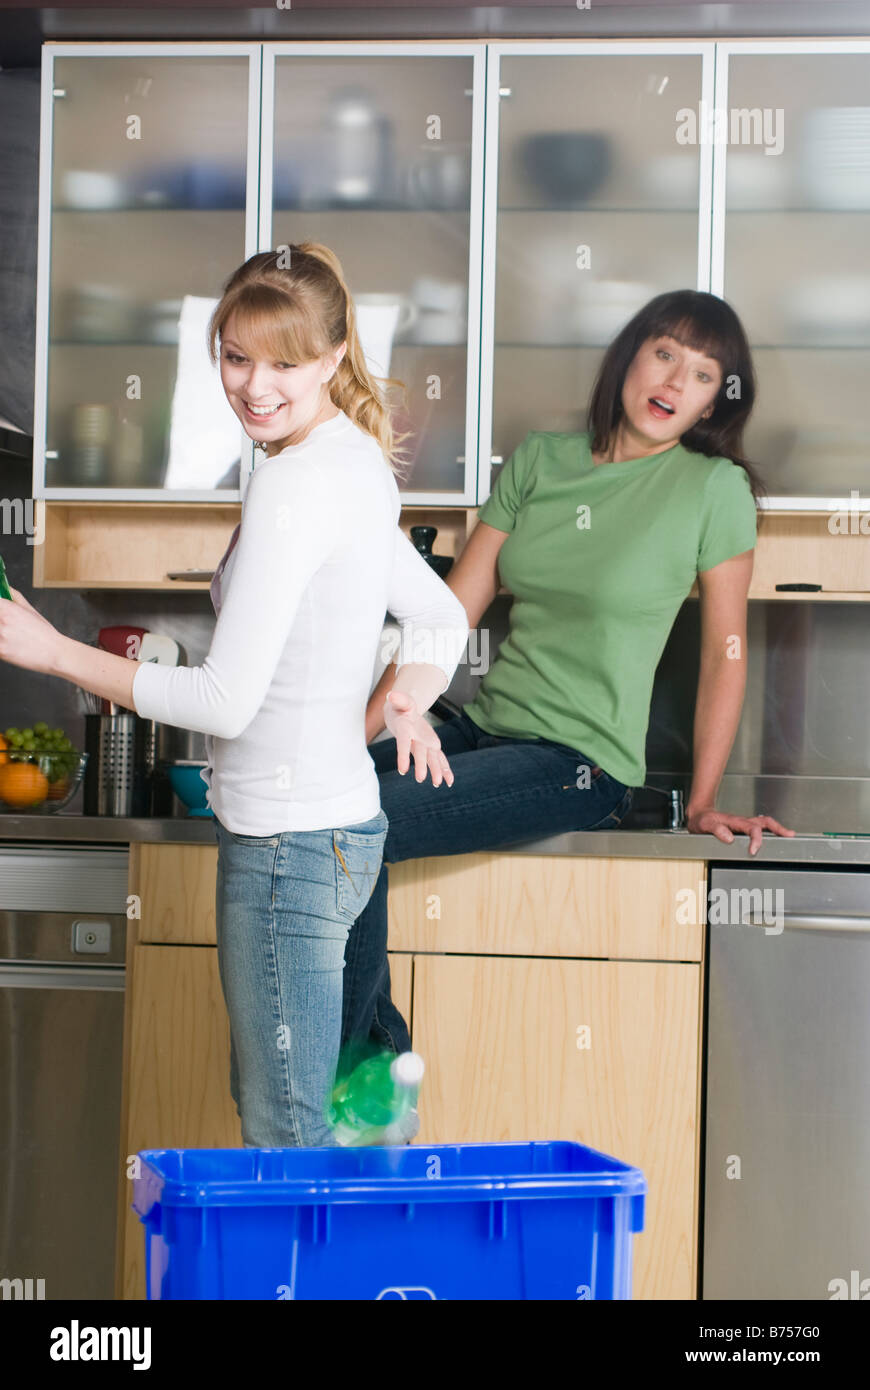 Woman tossing recycling into recycling bin as friend watches, Winnipeg, Manitoba Stock Photo